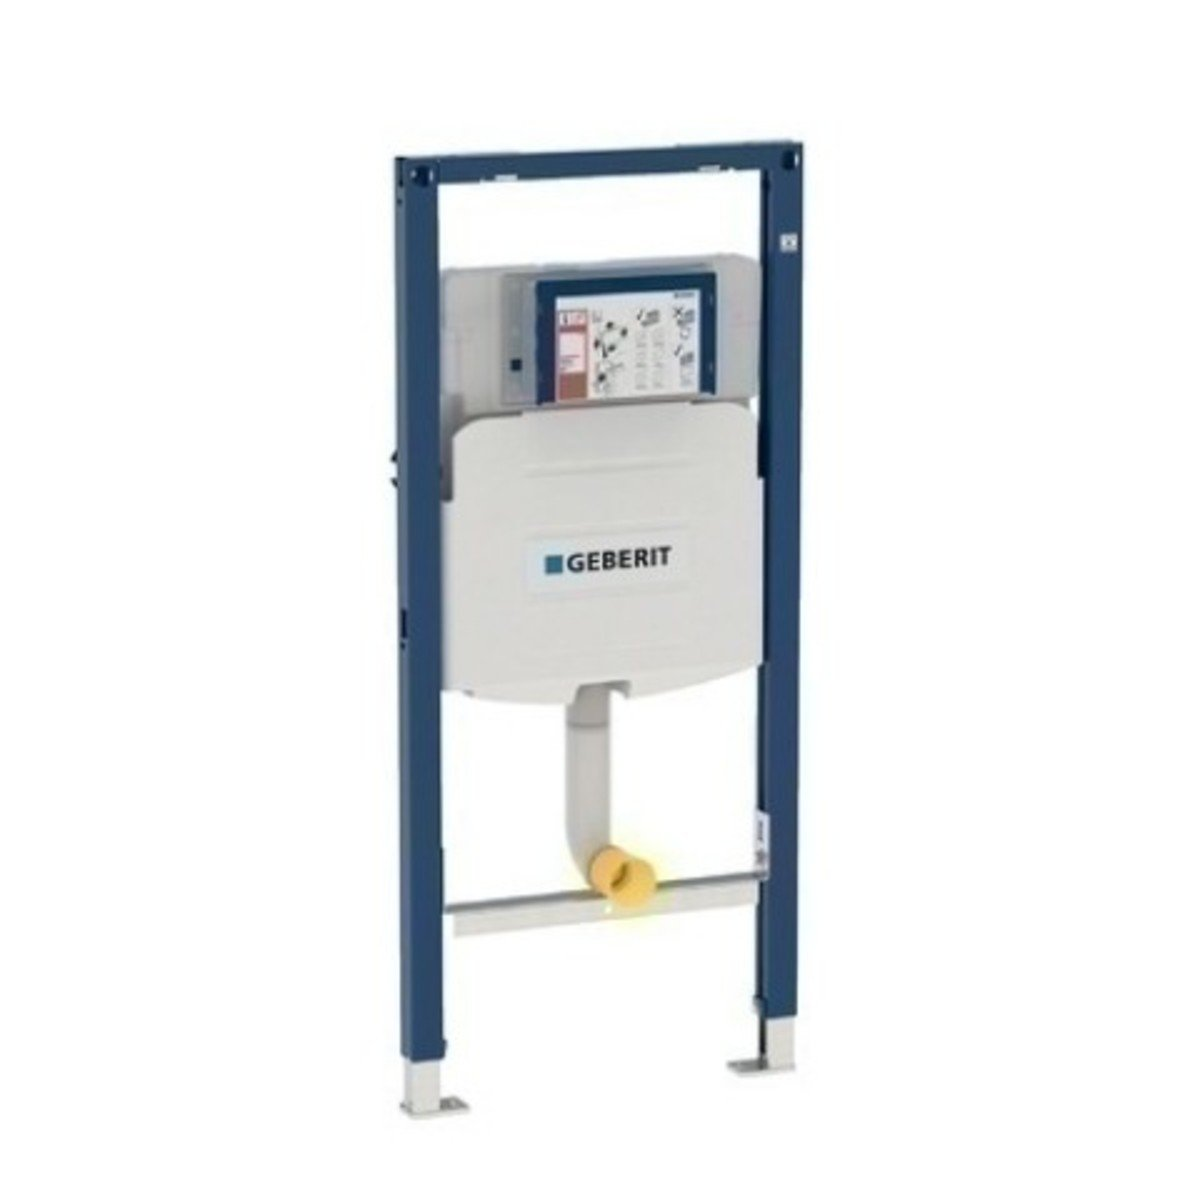 Geberit duofix inbouwreservoir h112 sigma v kinder staand for Geberit products